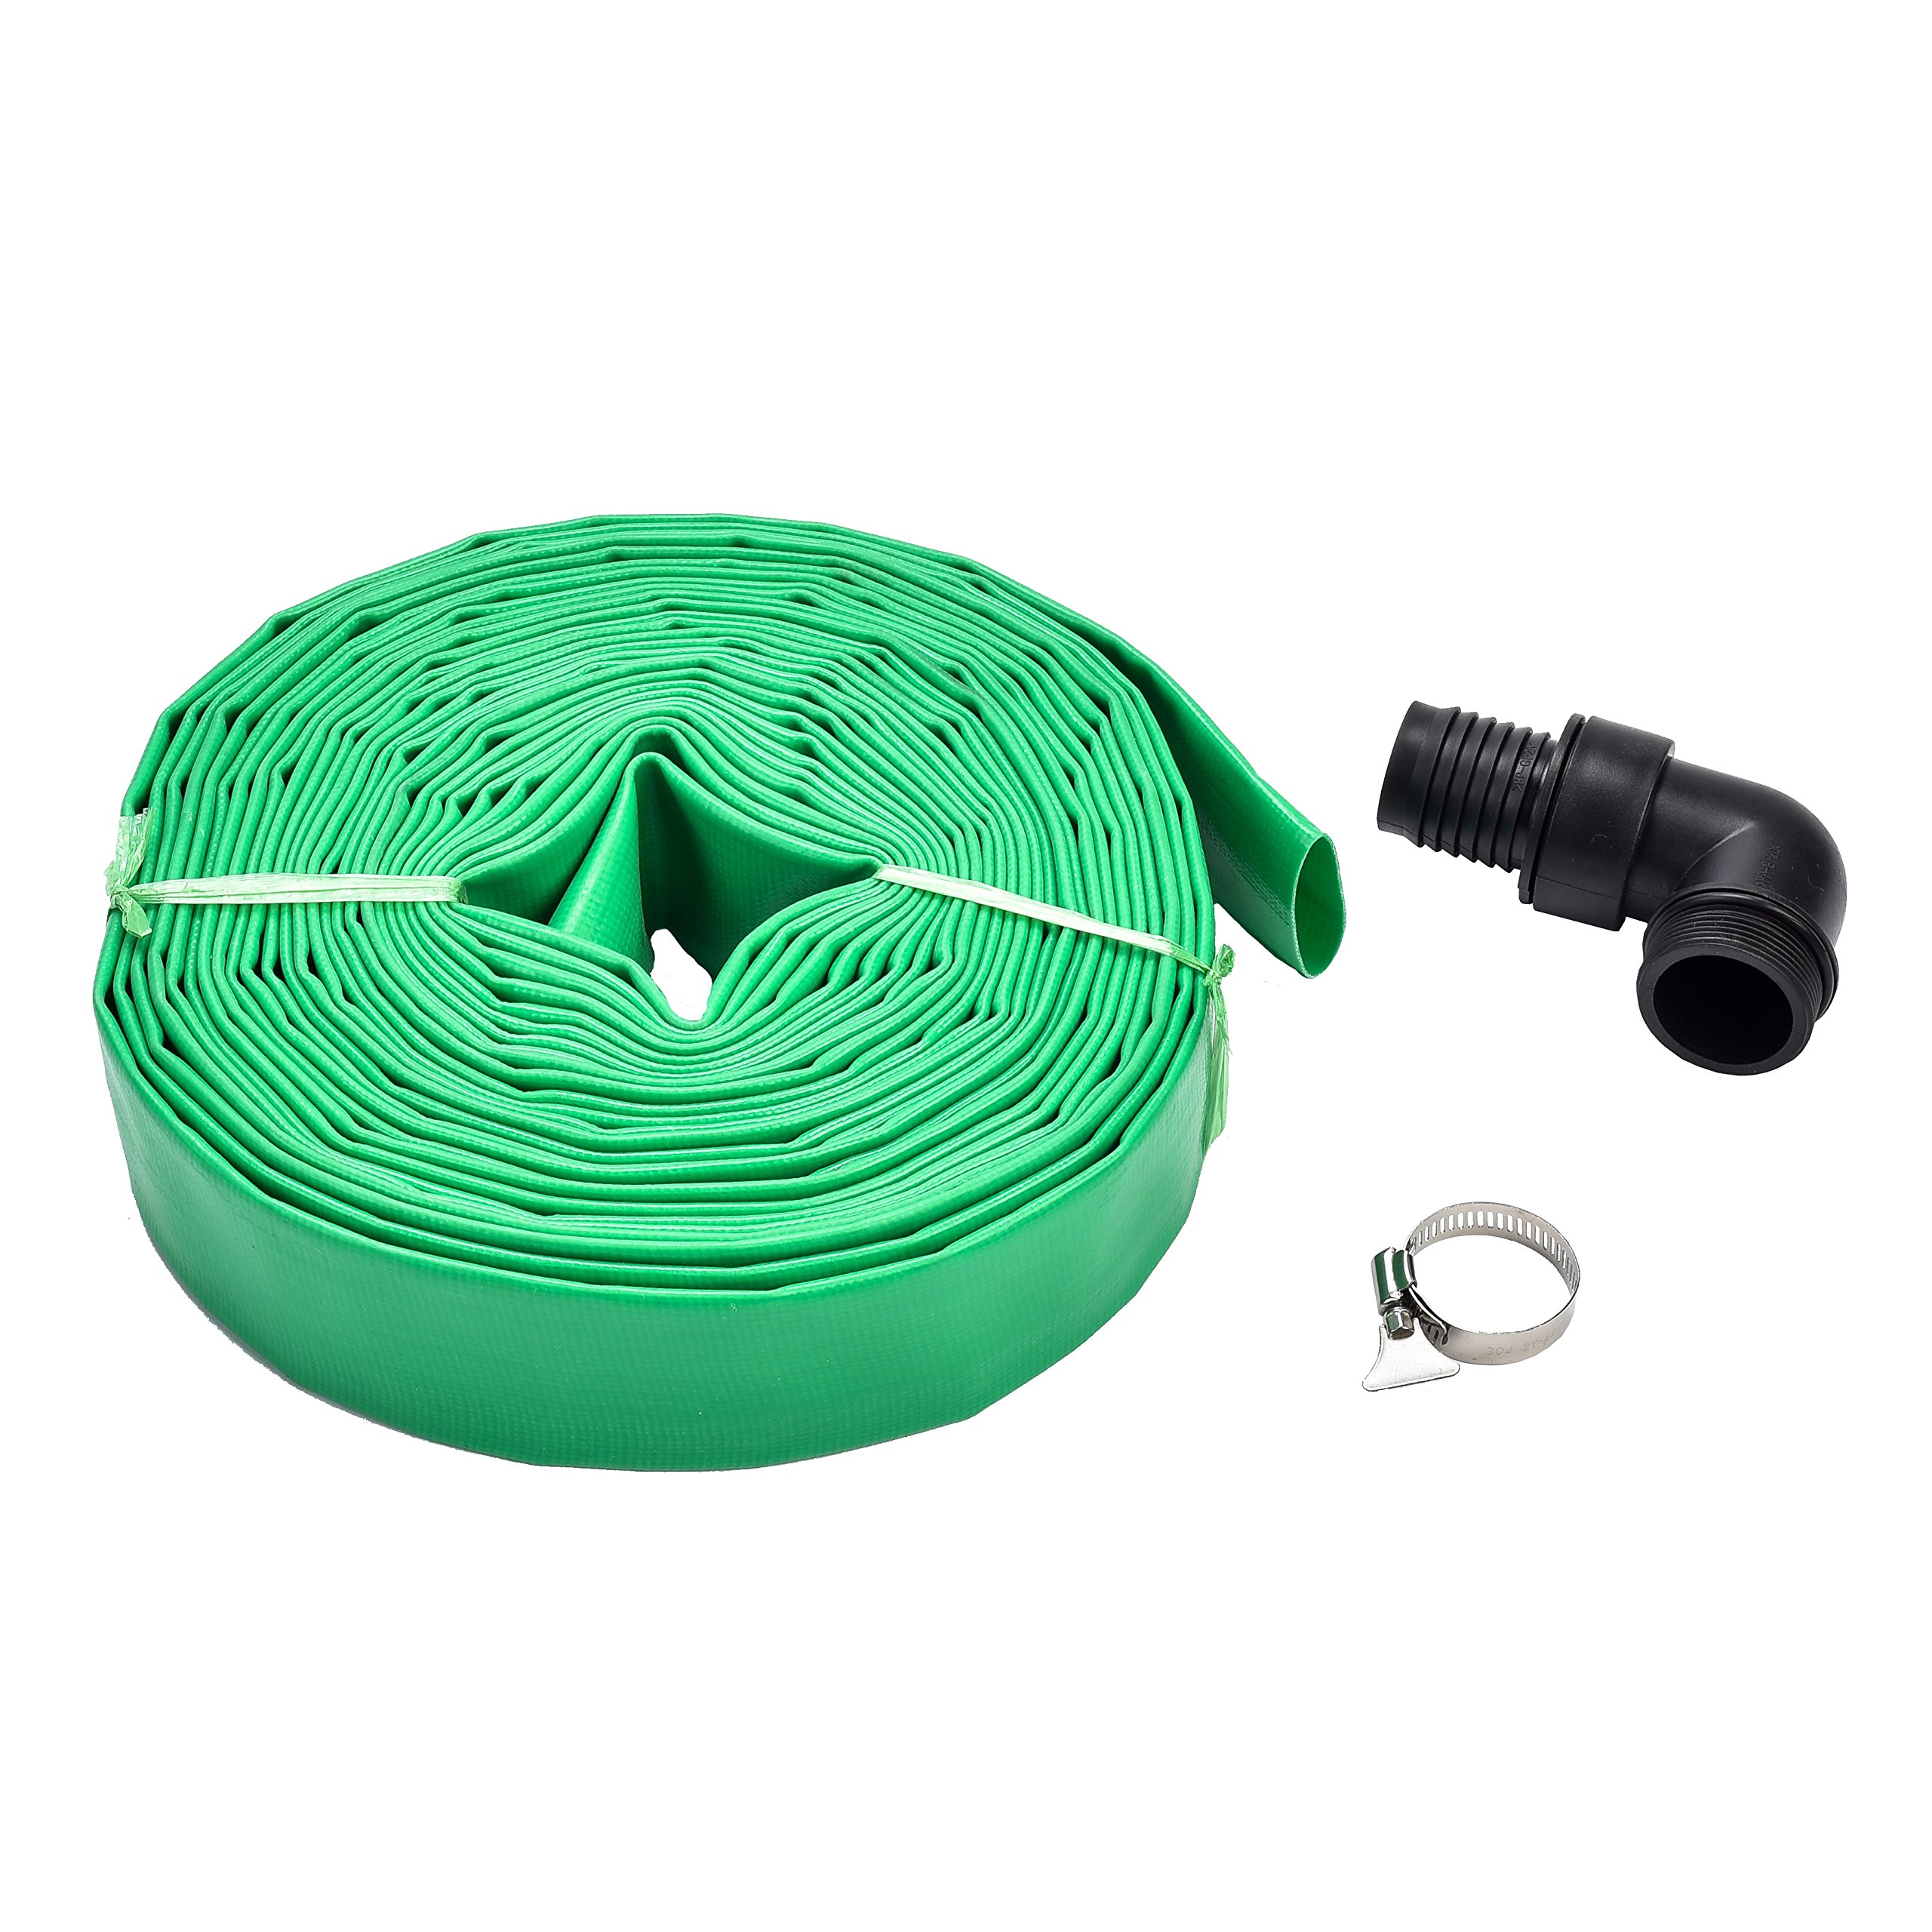 Fluent Power PVC Lay Flat Discharge Hose Kit 1-1/2''x49ft Including Sump Pump 1.5'' Adapter and Stainless Clamp by FLUENTPOWER